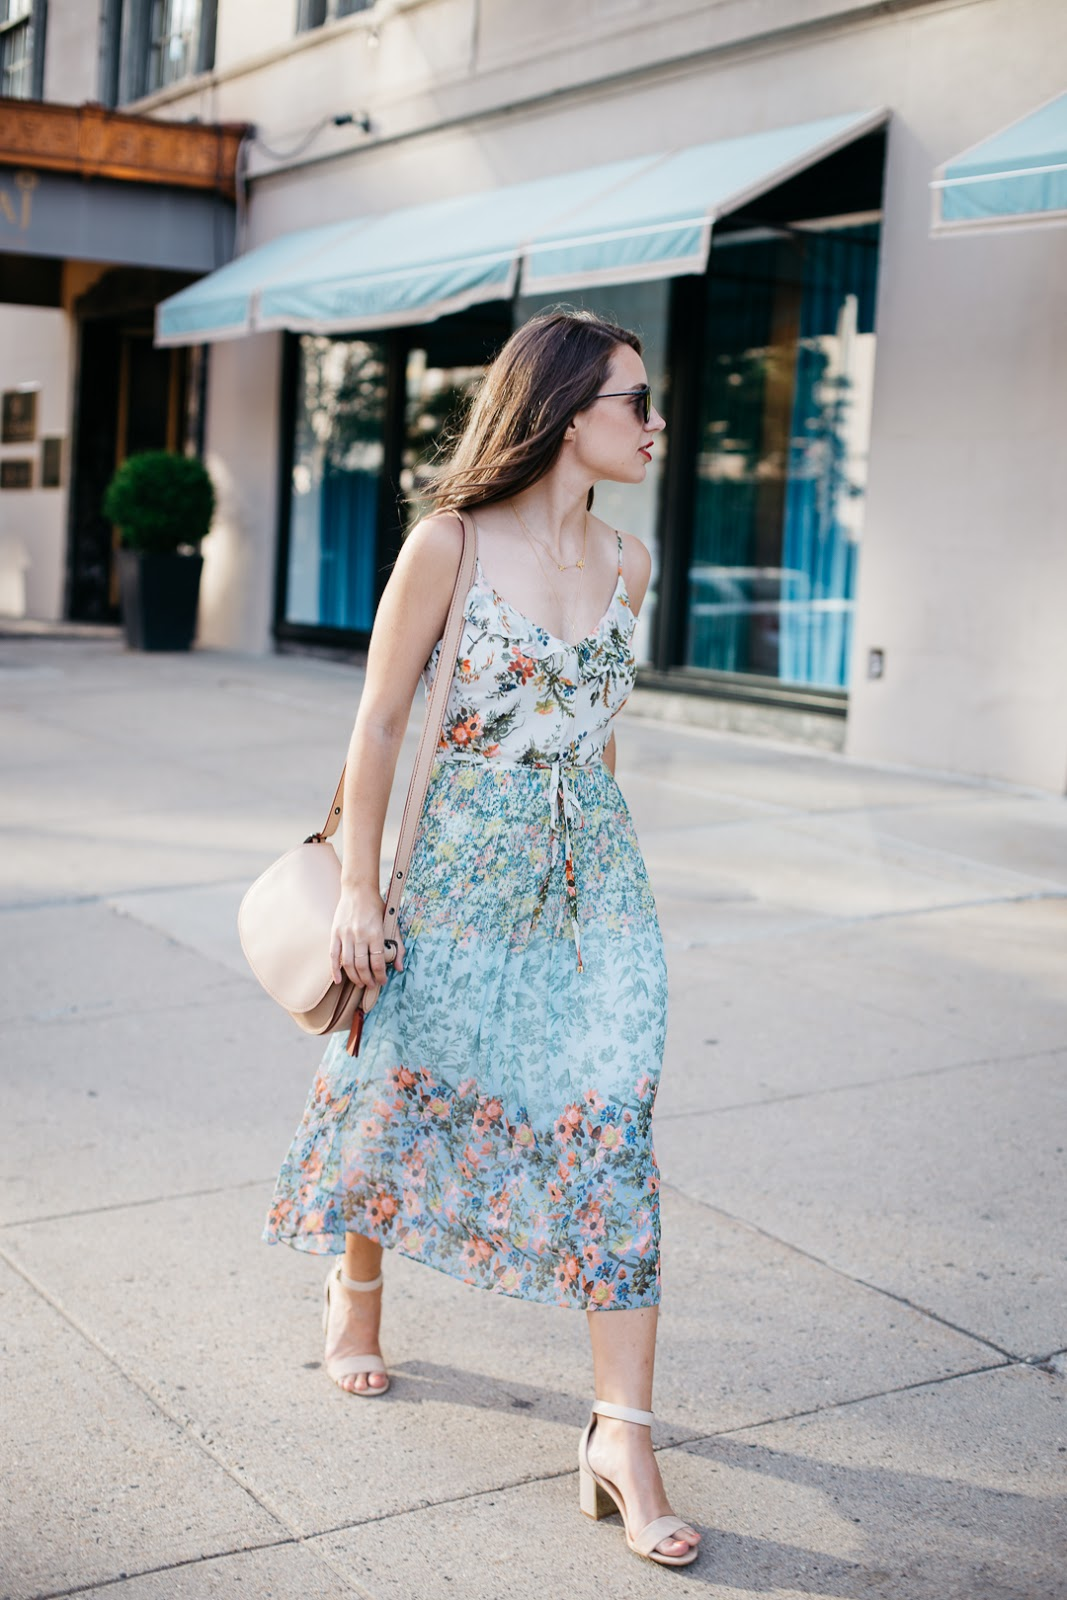 Taking my new ditzy print Oasis dress for a summer stroll through Boston